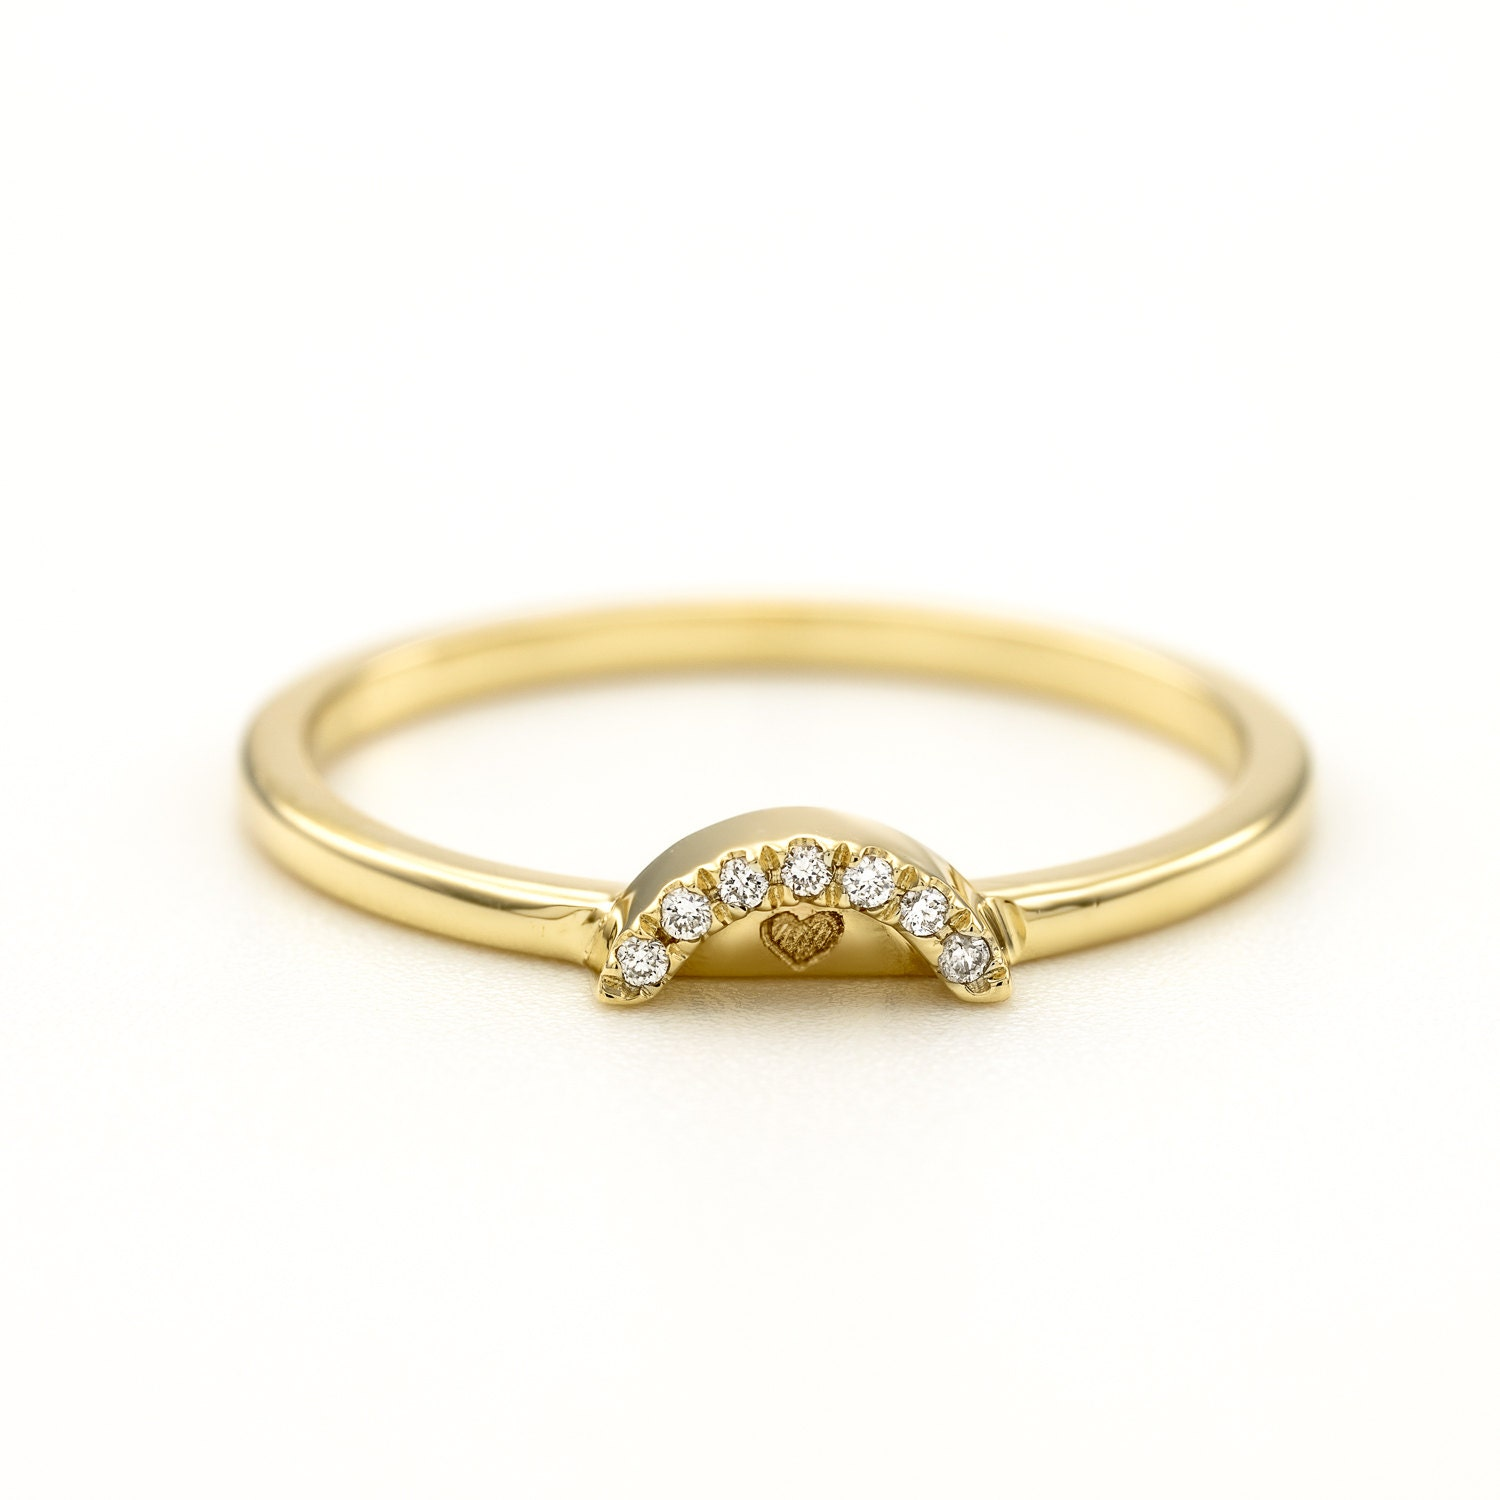 simple gold media ring diamond bandsimple solid elegant band wedding ringstackable space white apart stackable bands